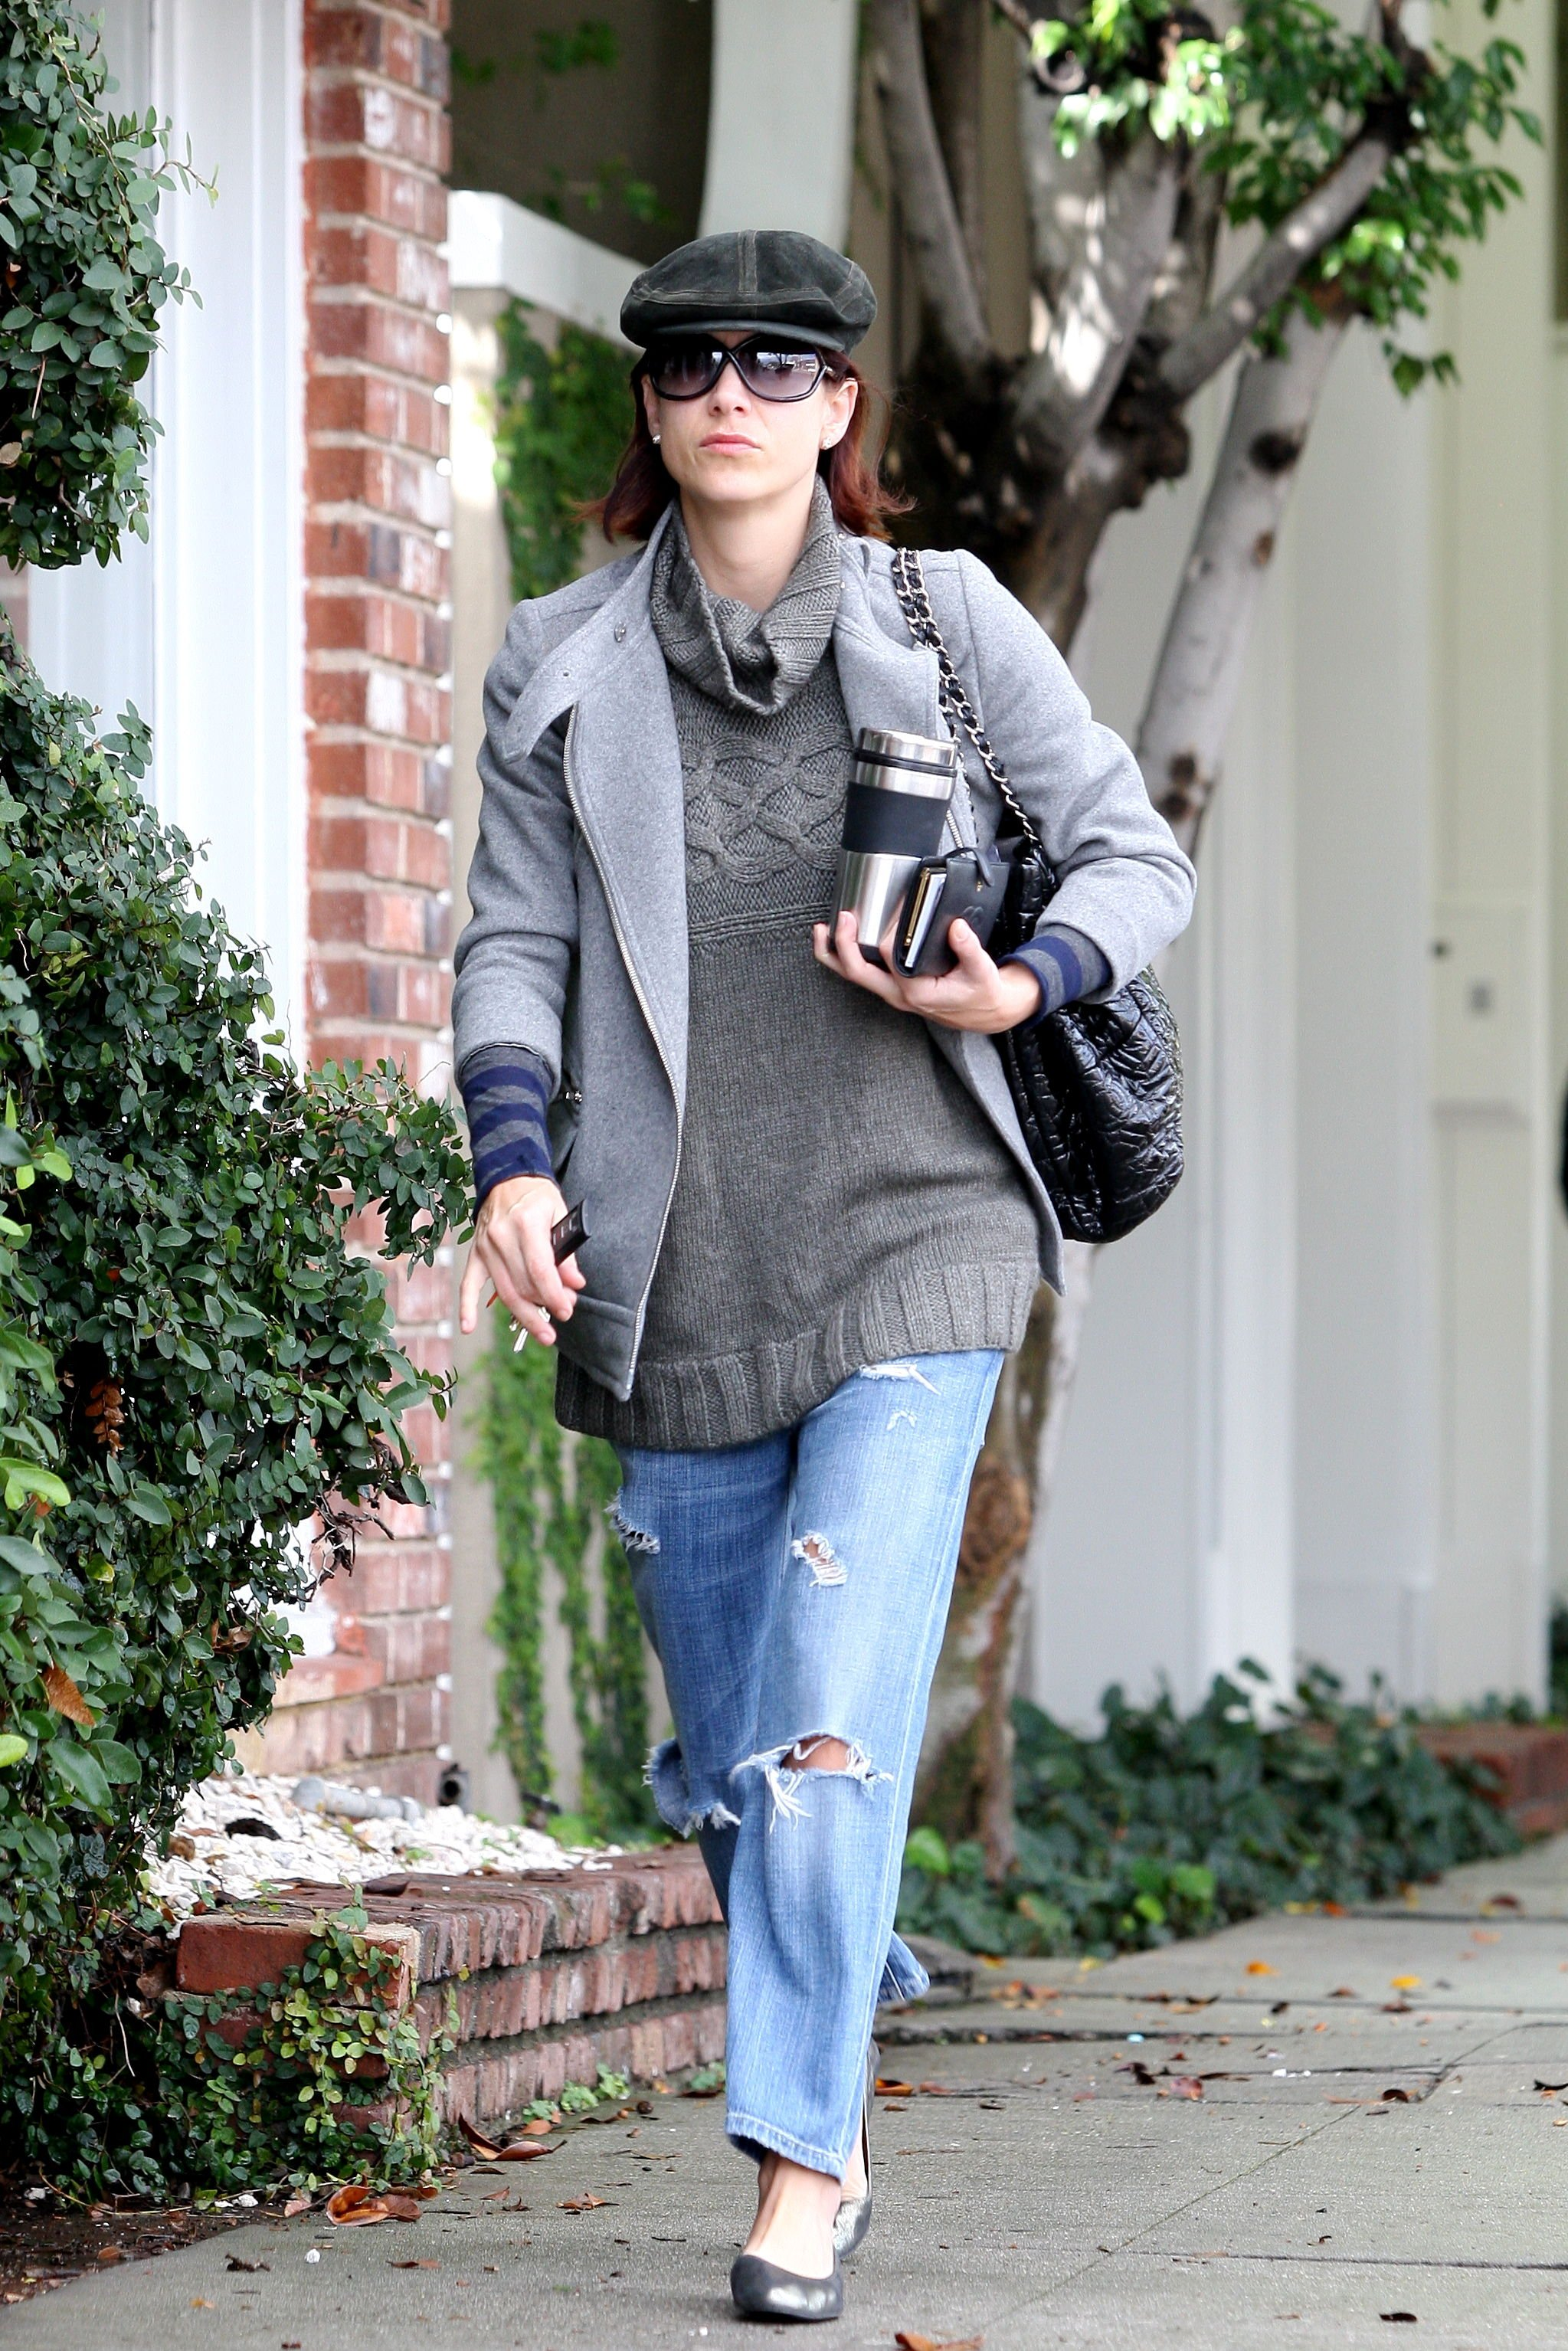 11381_Celebutopia-Kate_Walsh_with_ripped_jeans_in_Hollywood-21_122_211lo.JPG